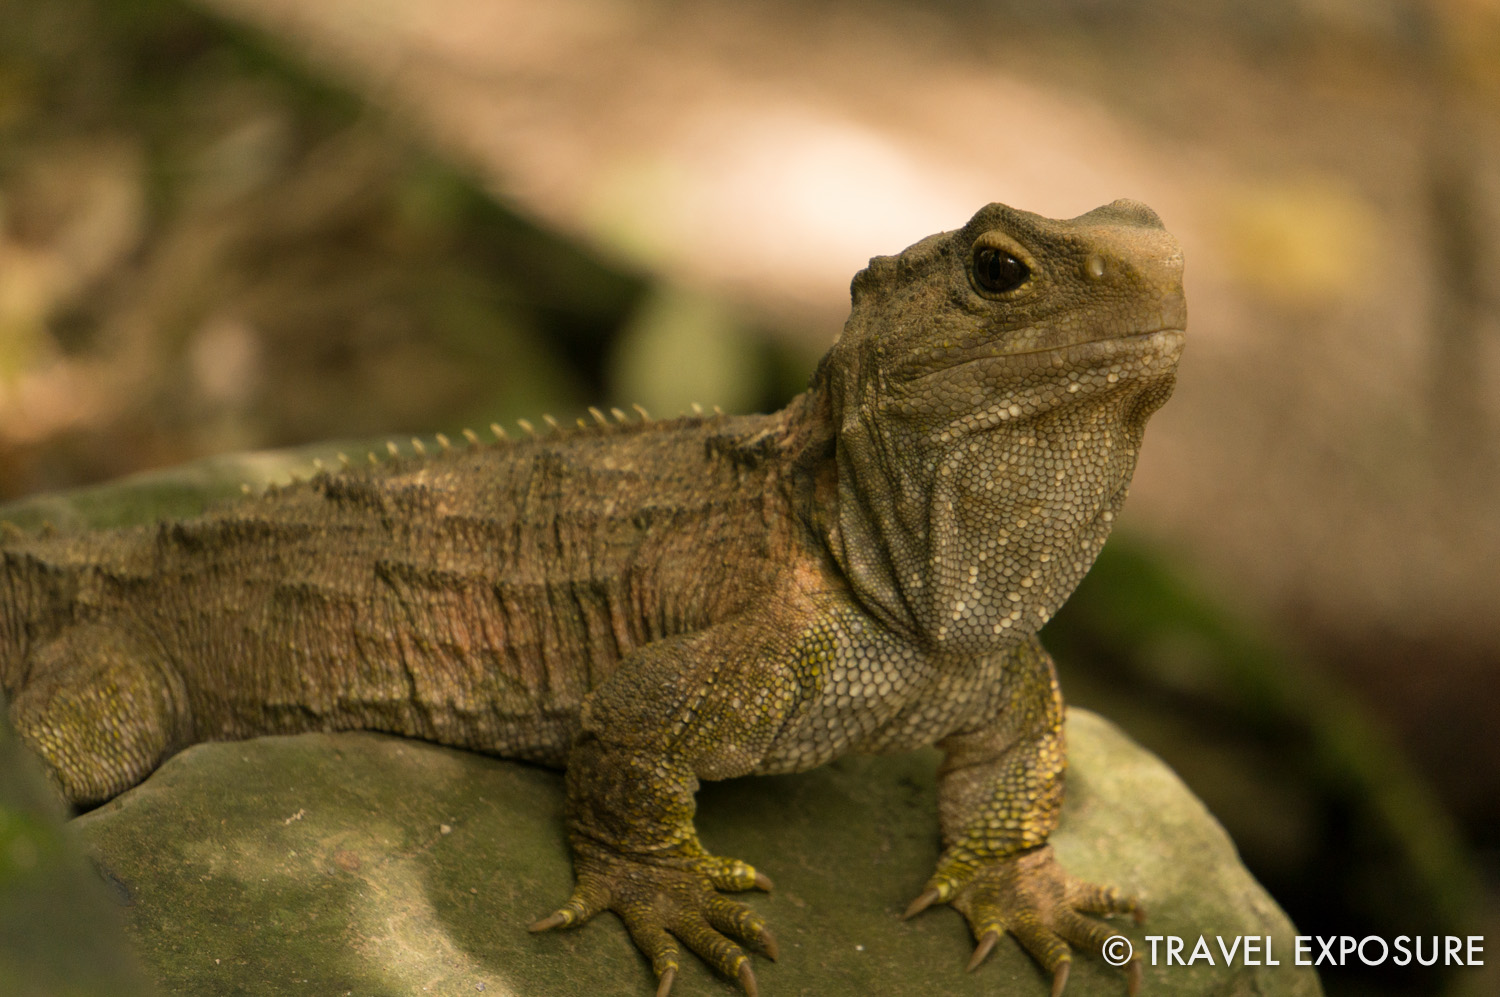 Tuatara are the only surviving members of an order of reptiles that flourished 200 million years ago.